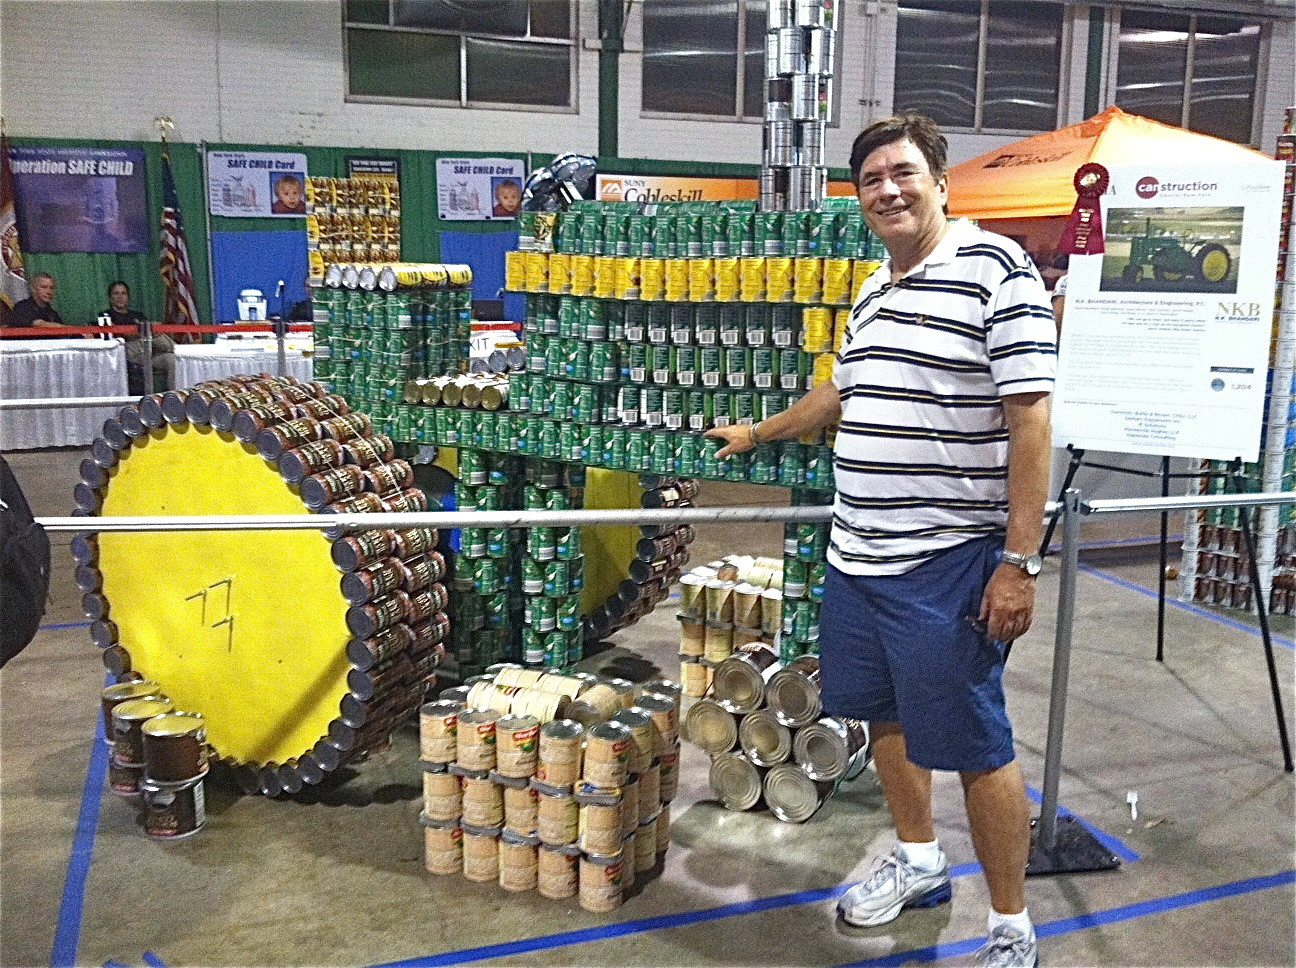 John with tractor made of cans